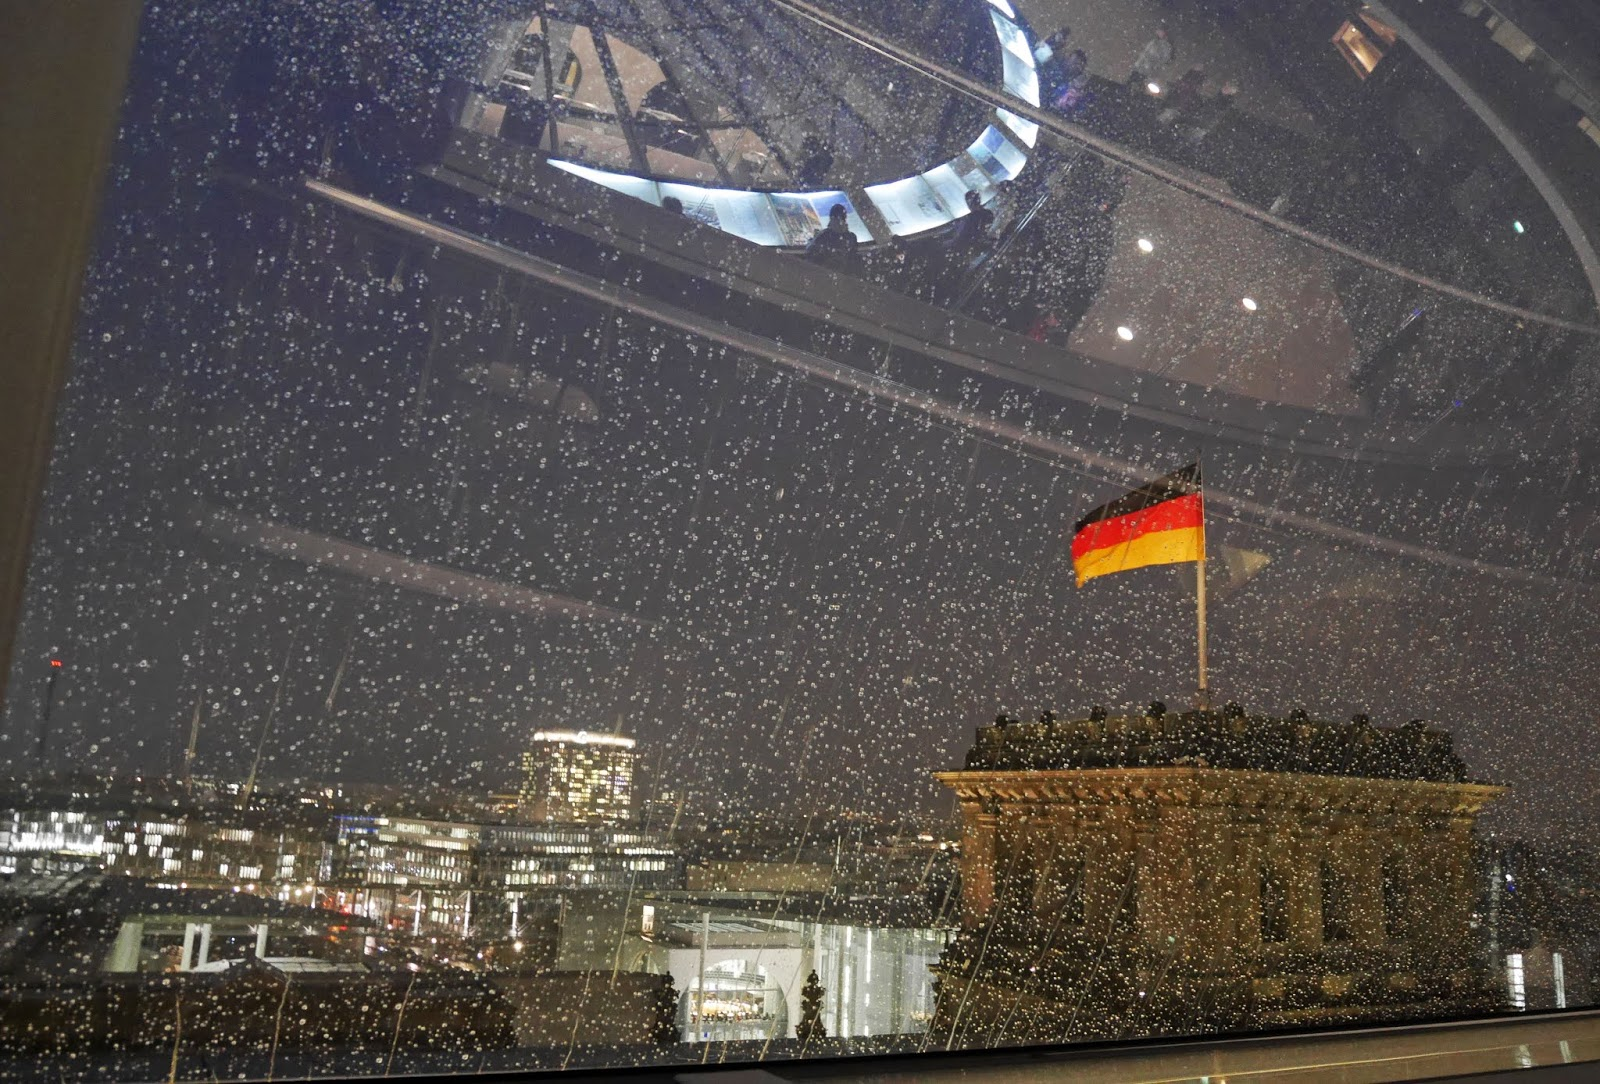 Rain on the windows of the Reichstag Dome, Berlin